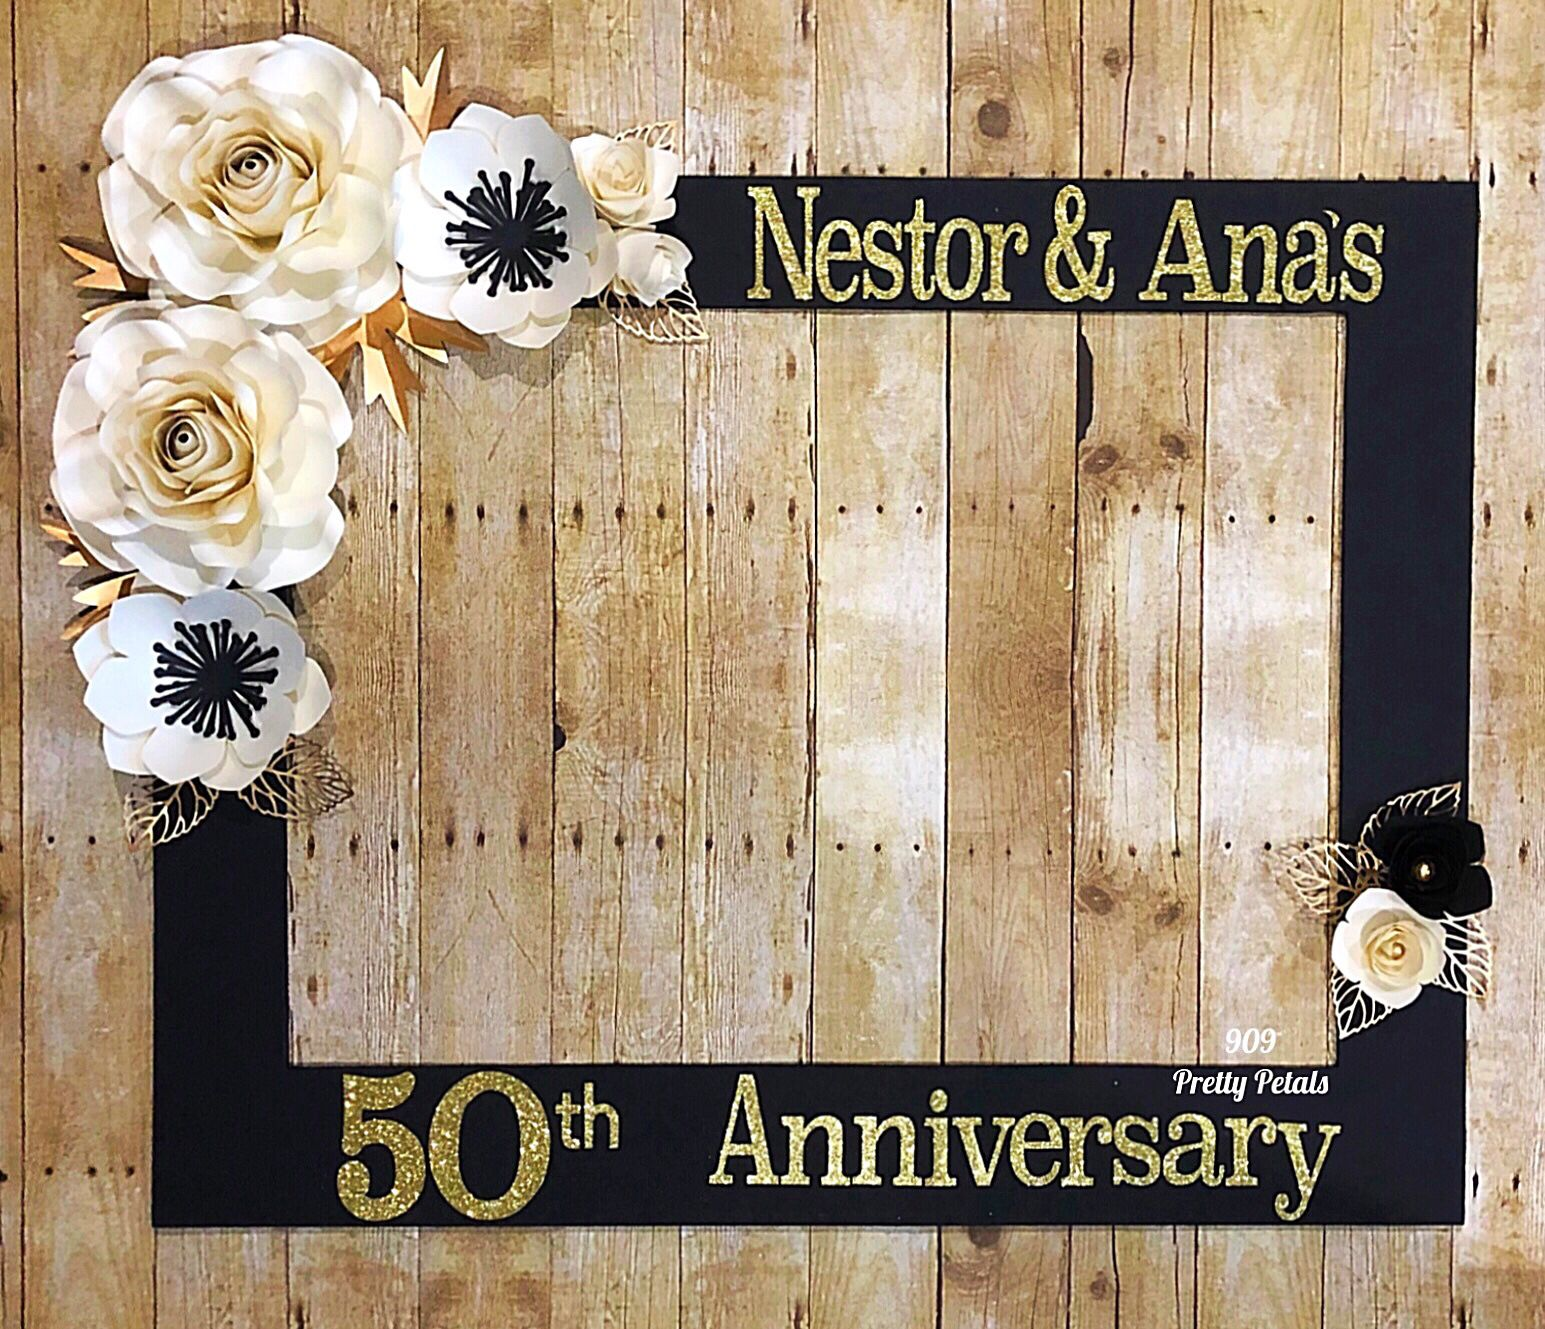 Selfie Frame 50th Anniversary Party Decorations 50th Wedding Anniversary Decorations 50th Anniversary Party